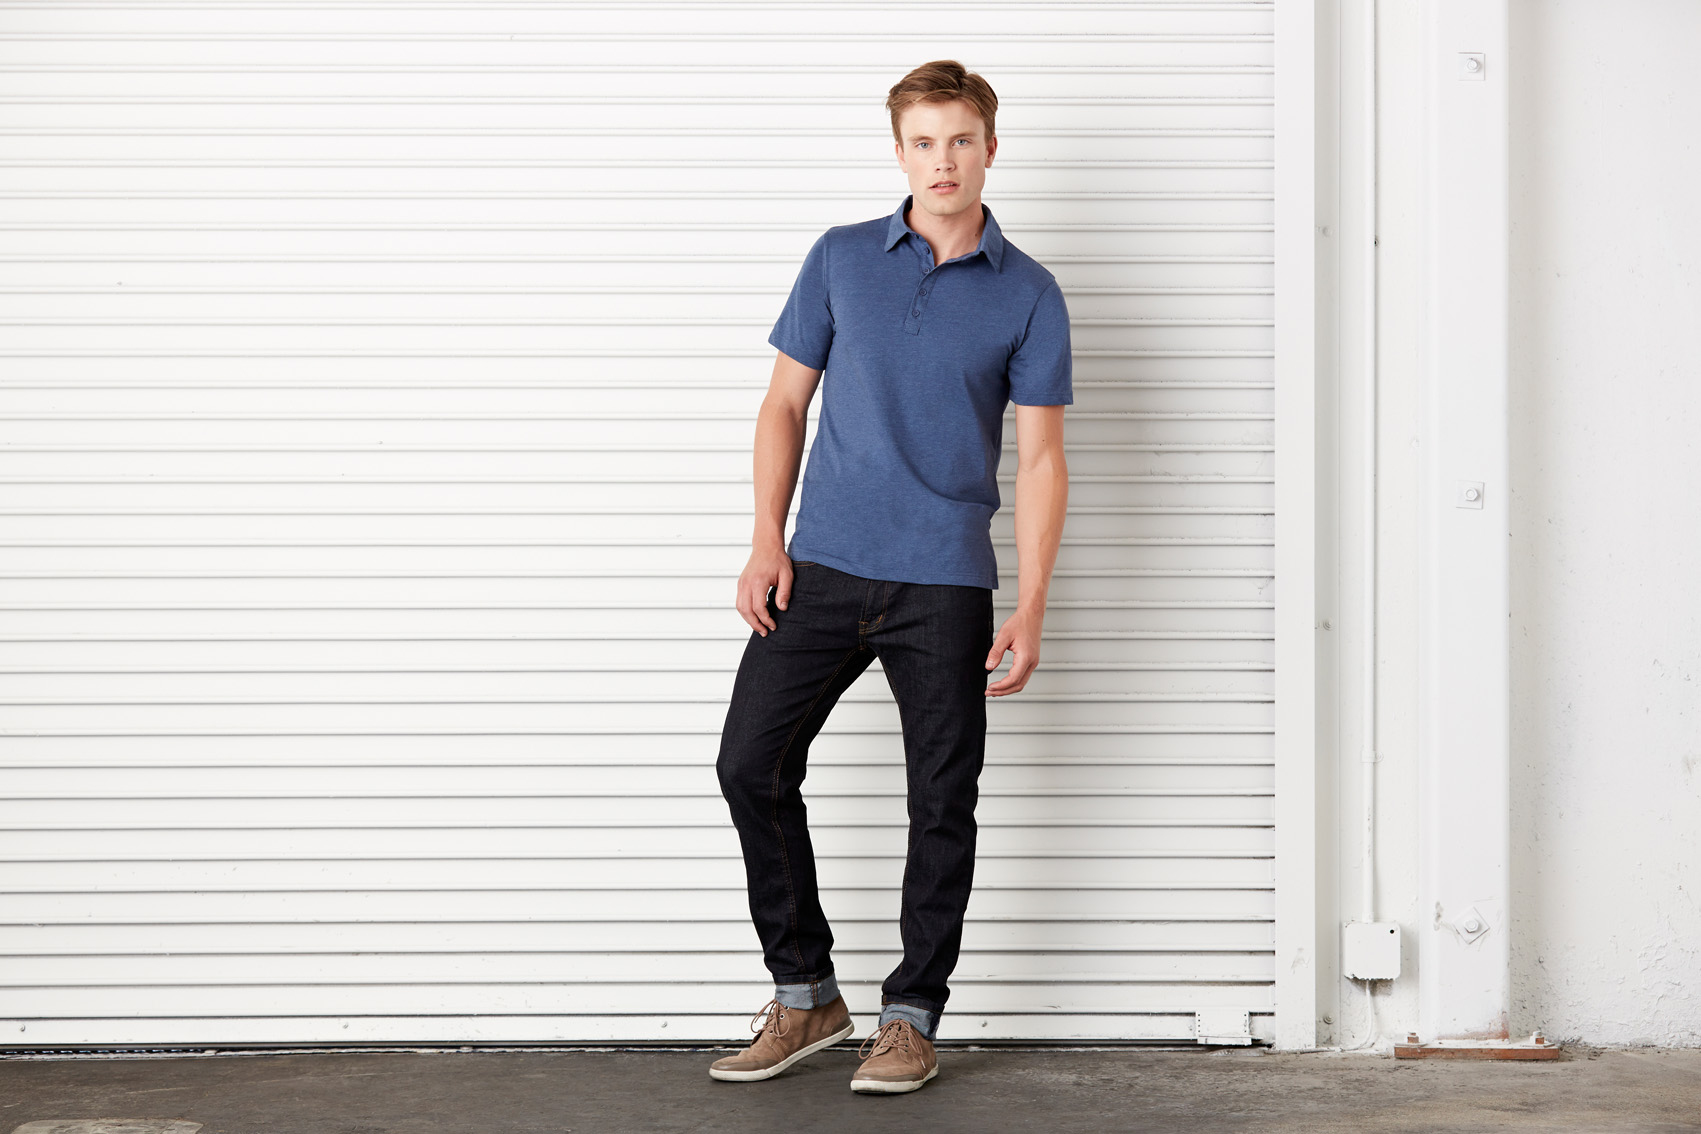 Bel+Can Polo 5-button